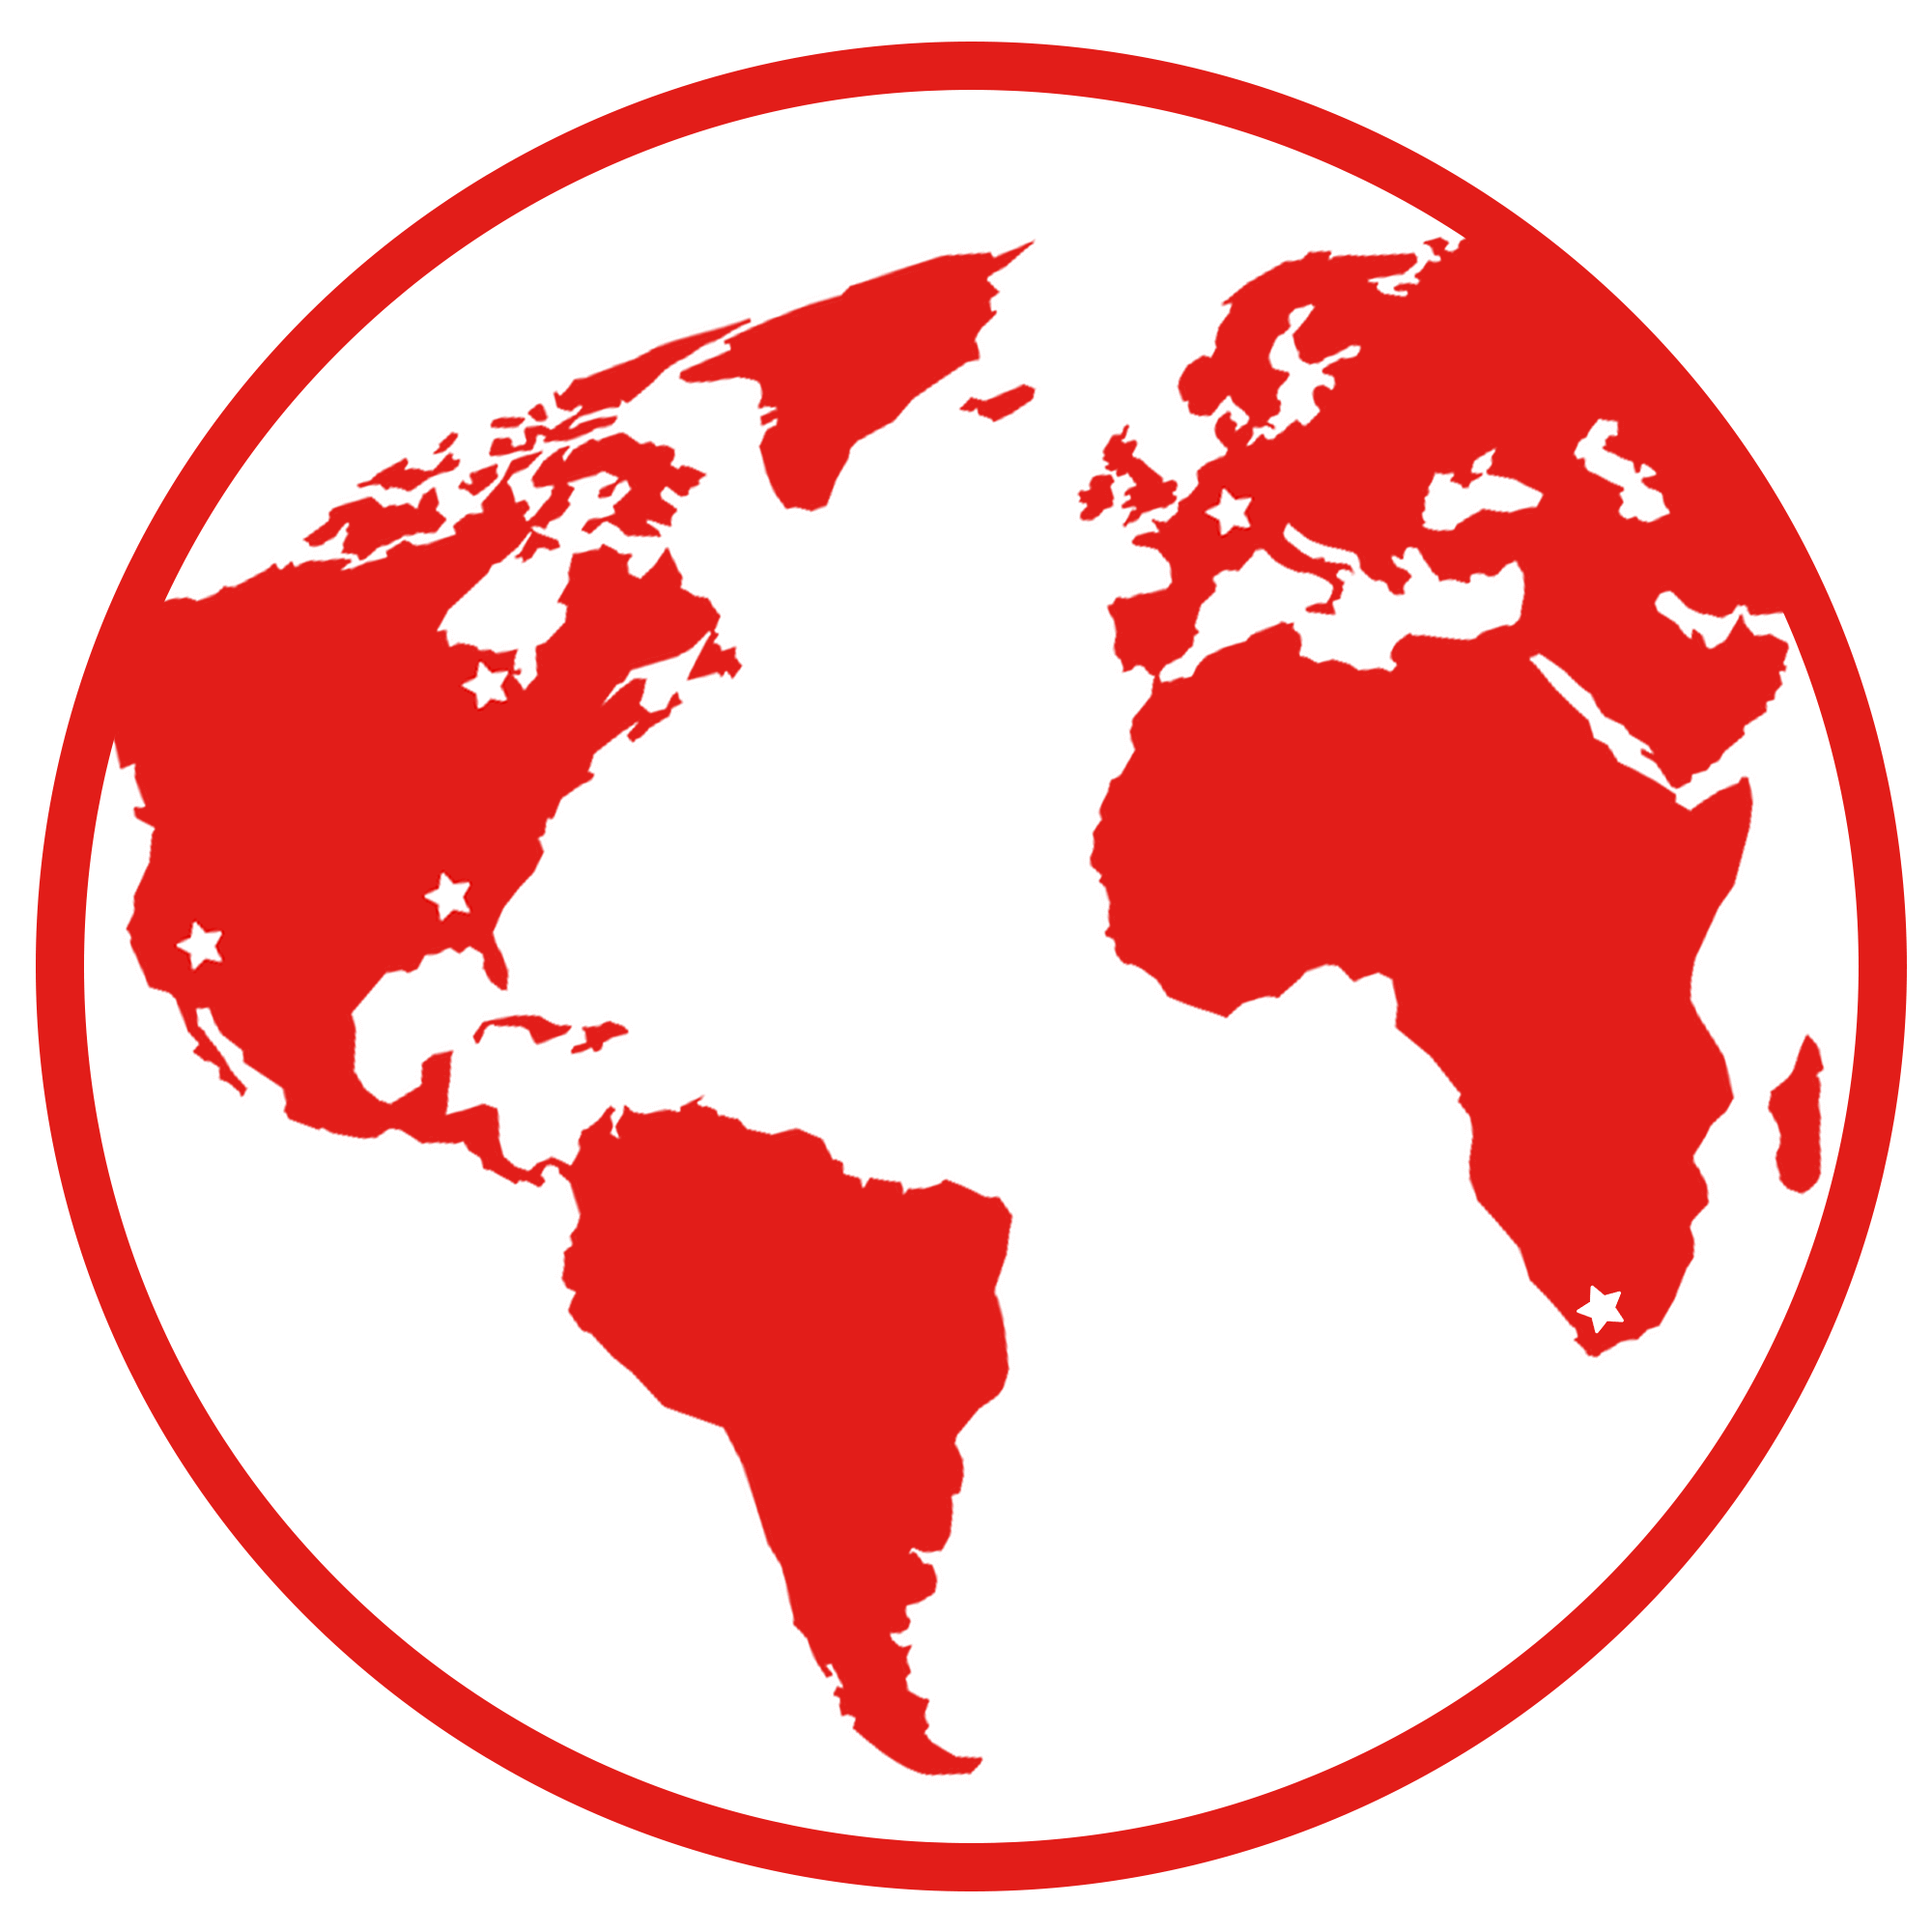 map of the world in red showing hosting locations